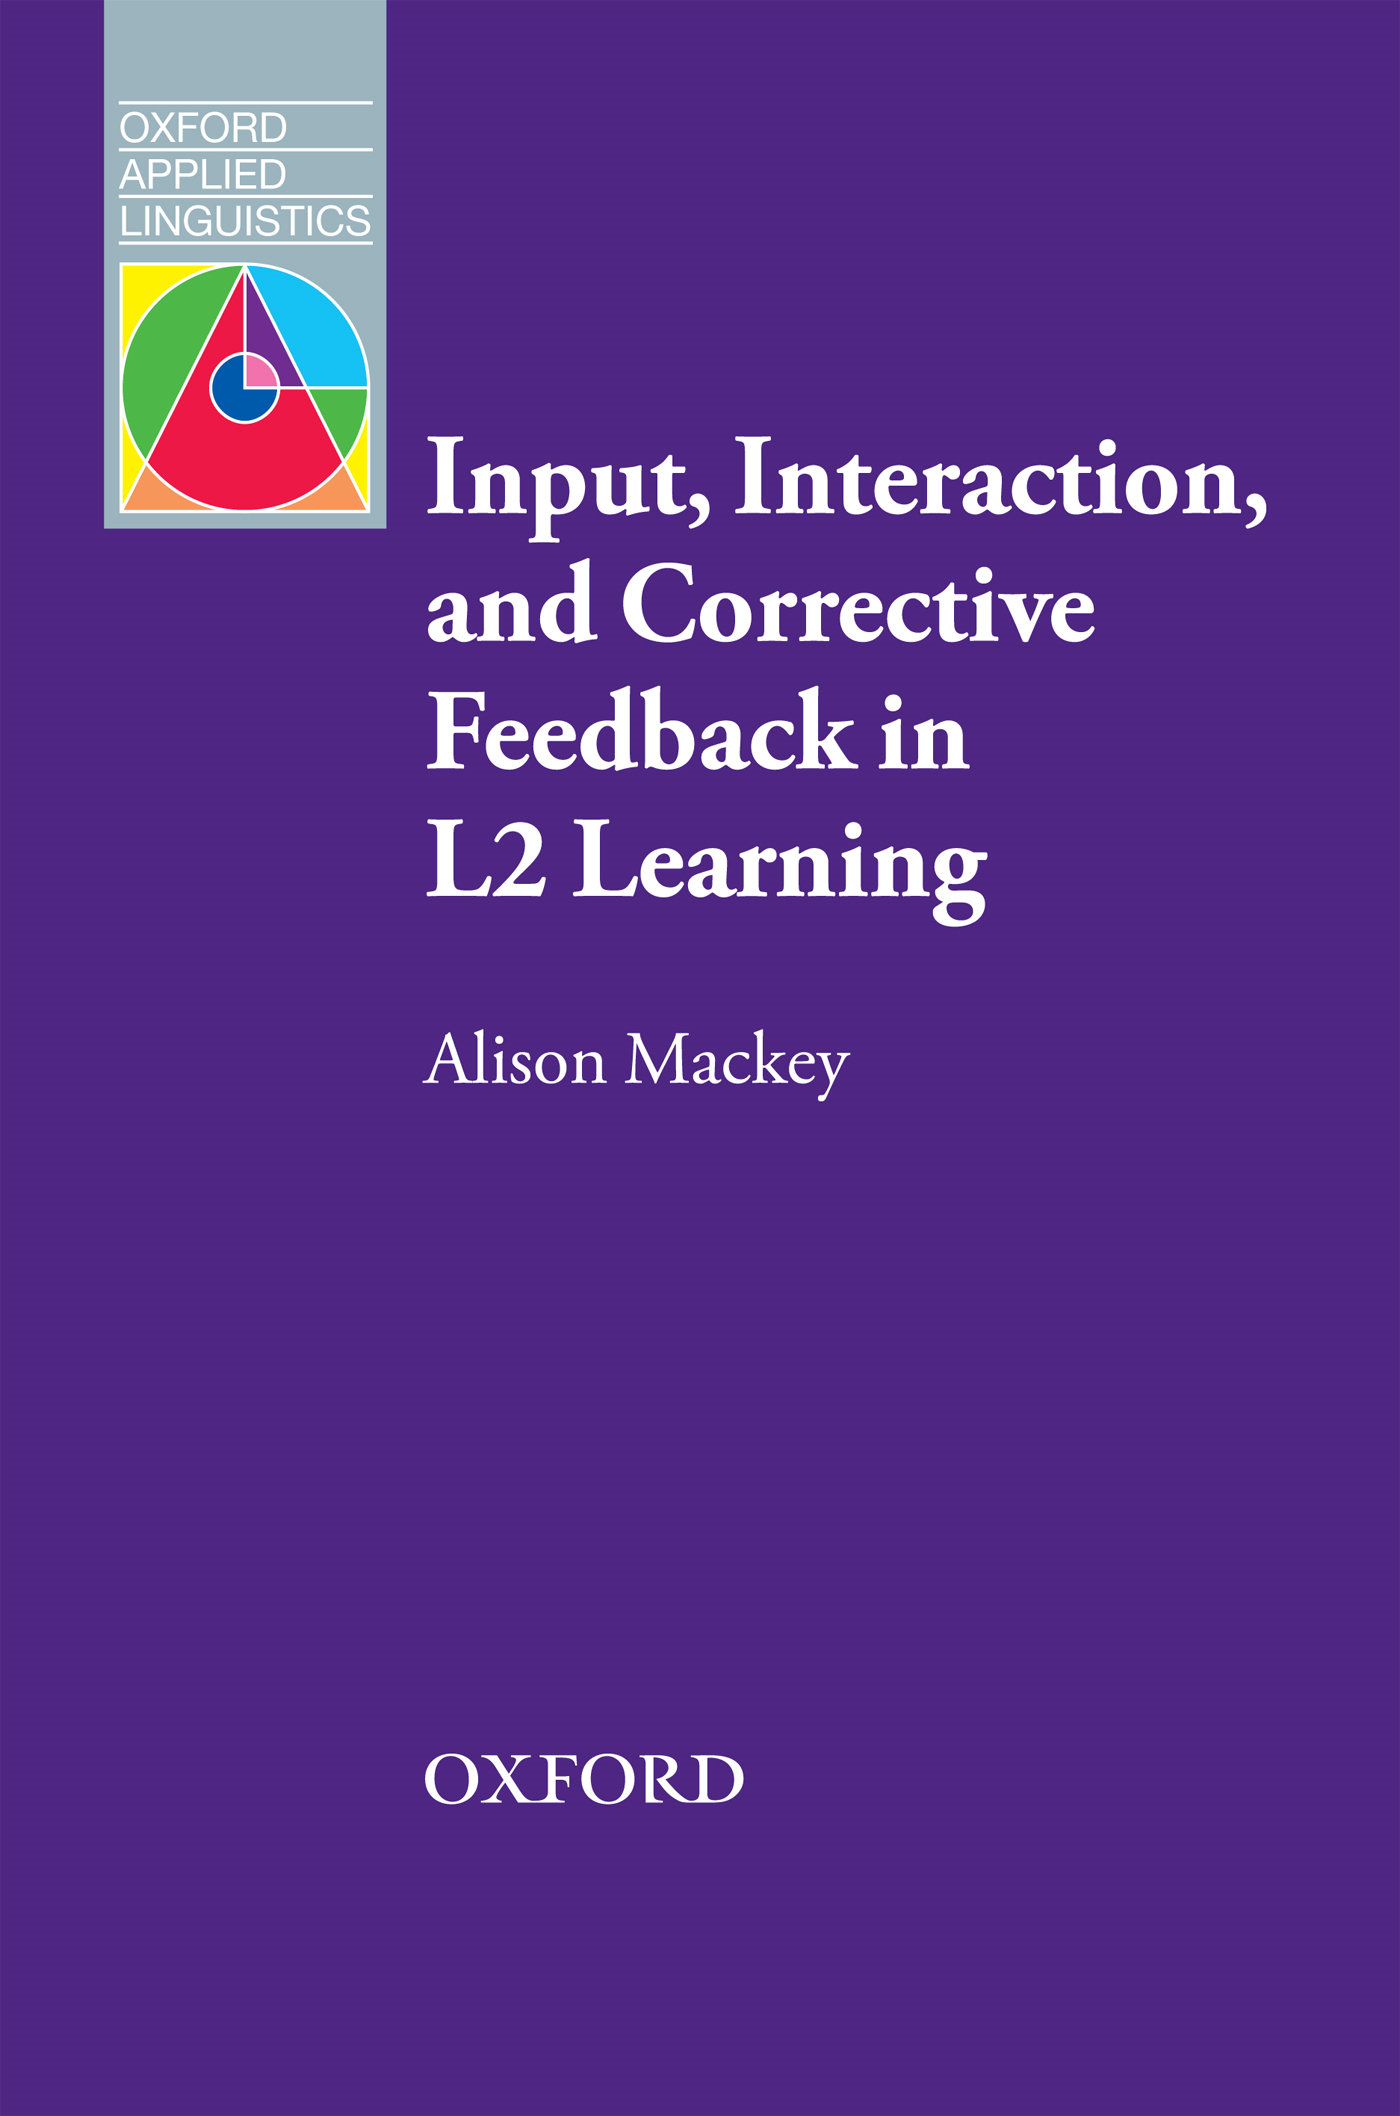 Input, Interaction and Corrective Feedback in L2 Learning